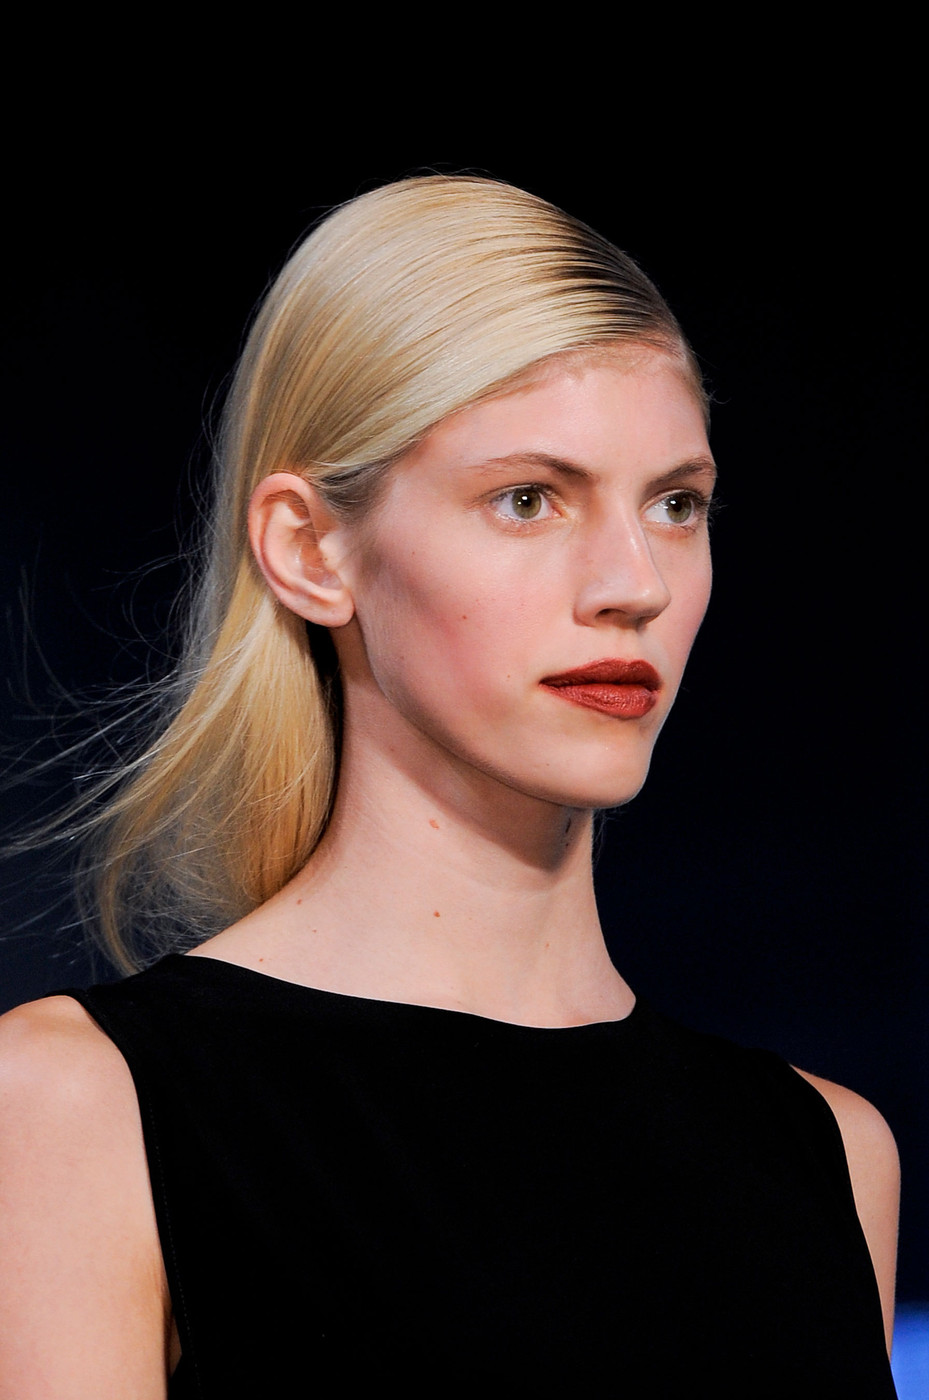 How to Nab Sleek Strands Without Looking Greasy the Helmut Lang Way